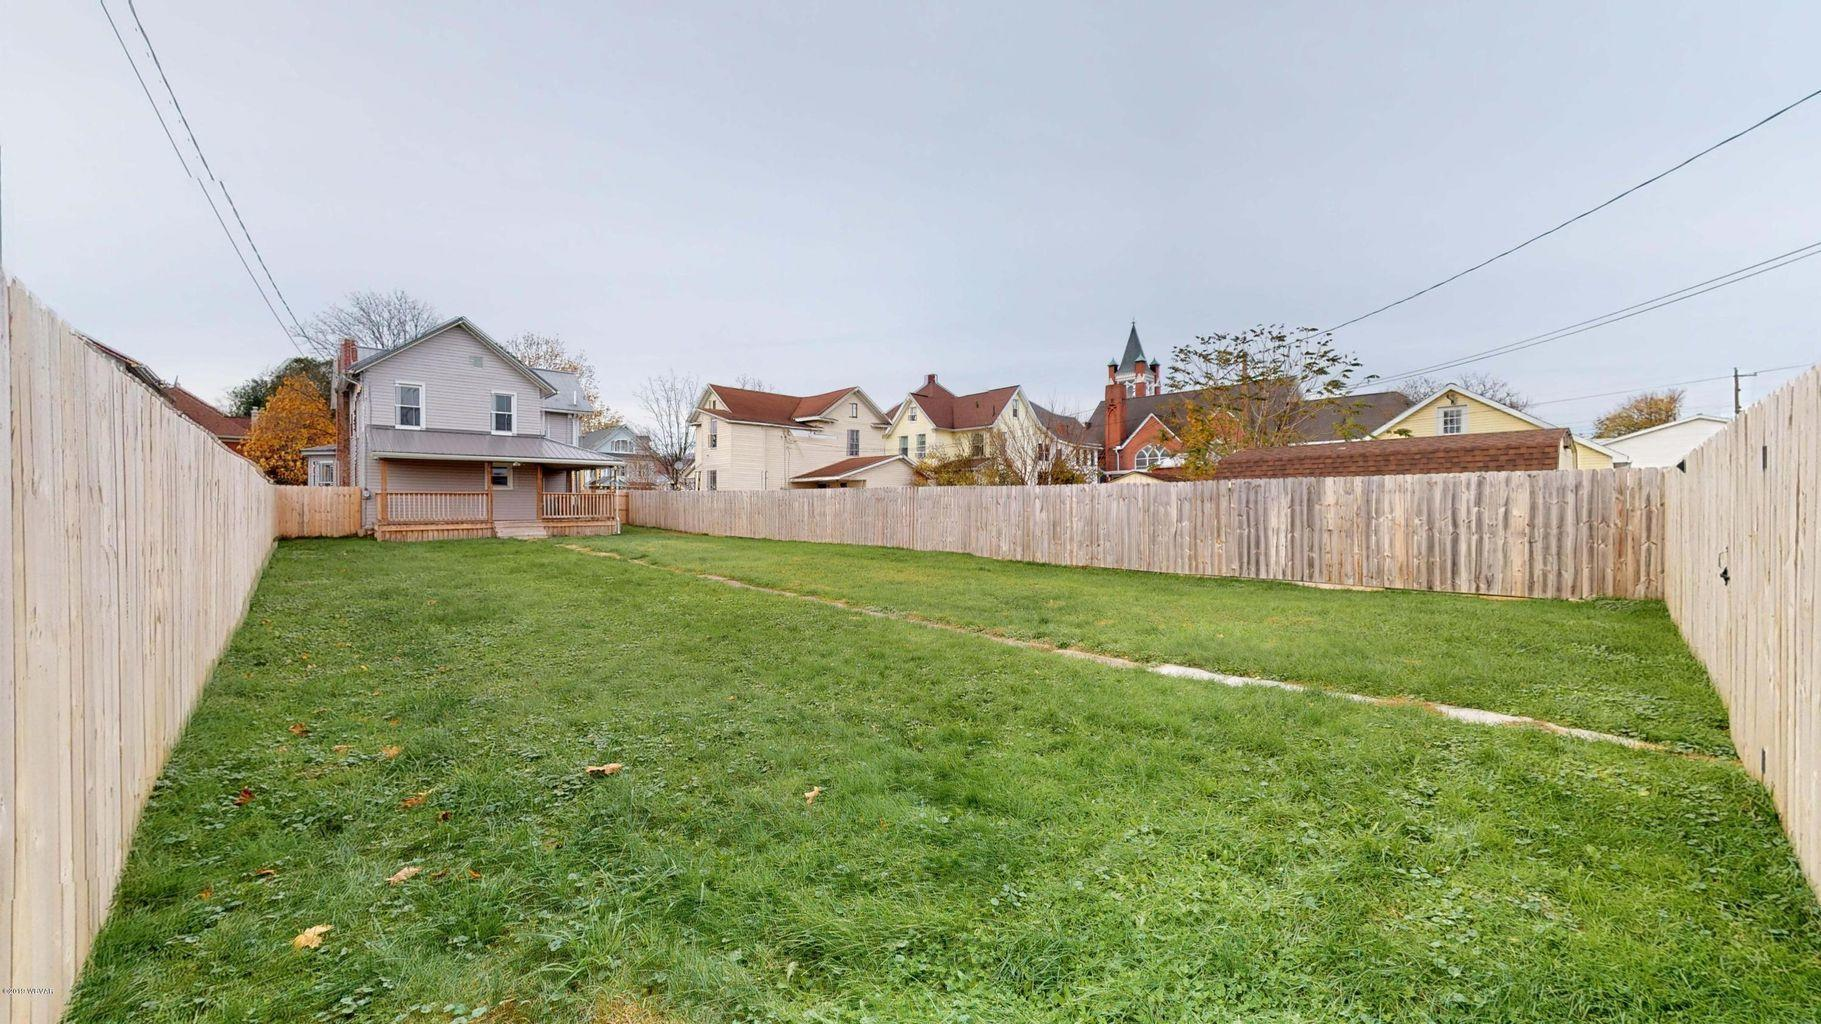 131 2ND STREET, Hughesville, PA 17737, 3 Bedrooms Bedrooms, ,2.5 BathroomsBathrooms,Residential,For sale,2ND,WB-92247